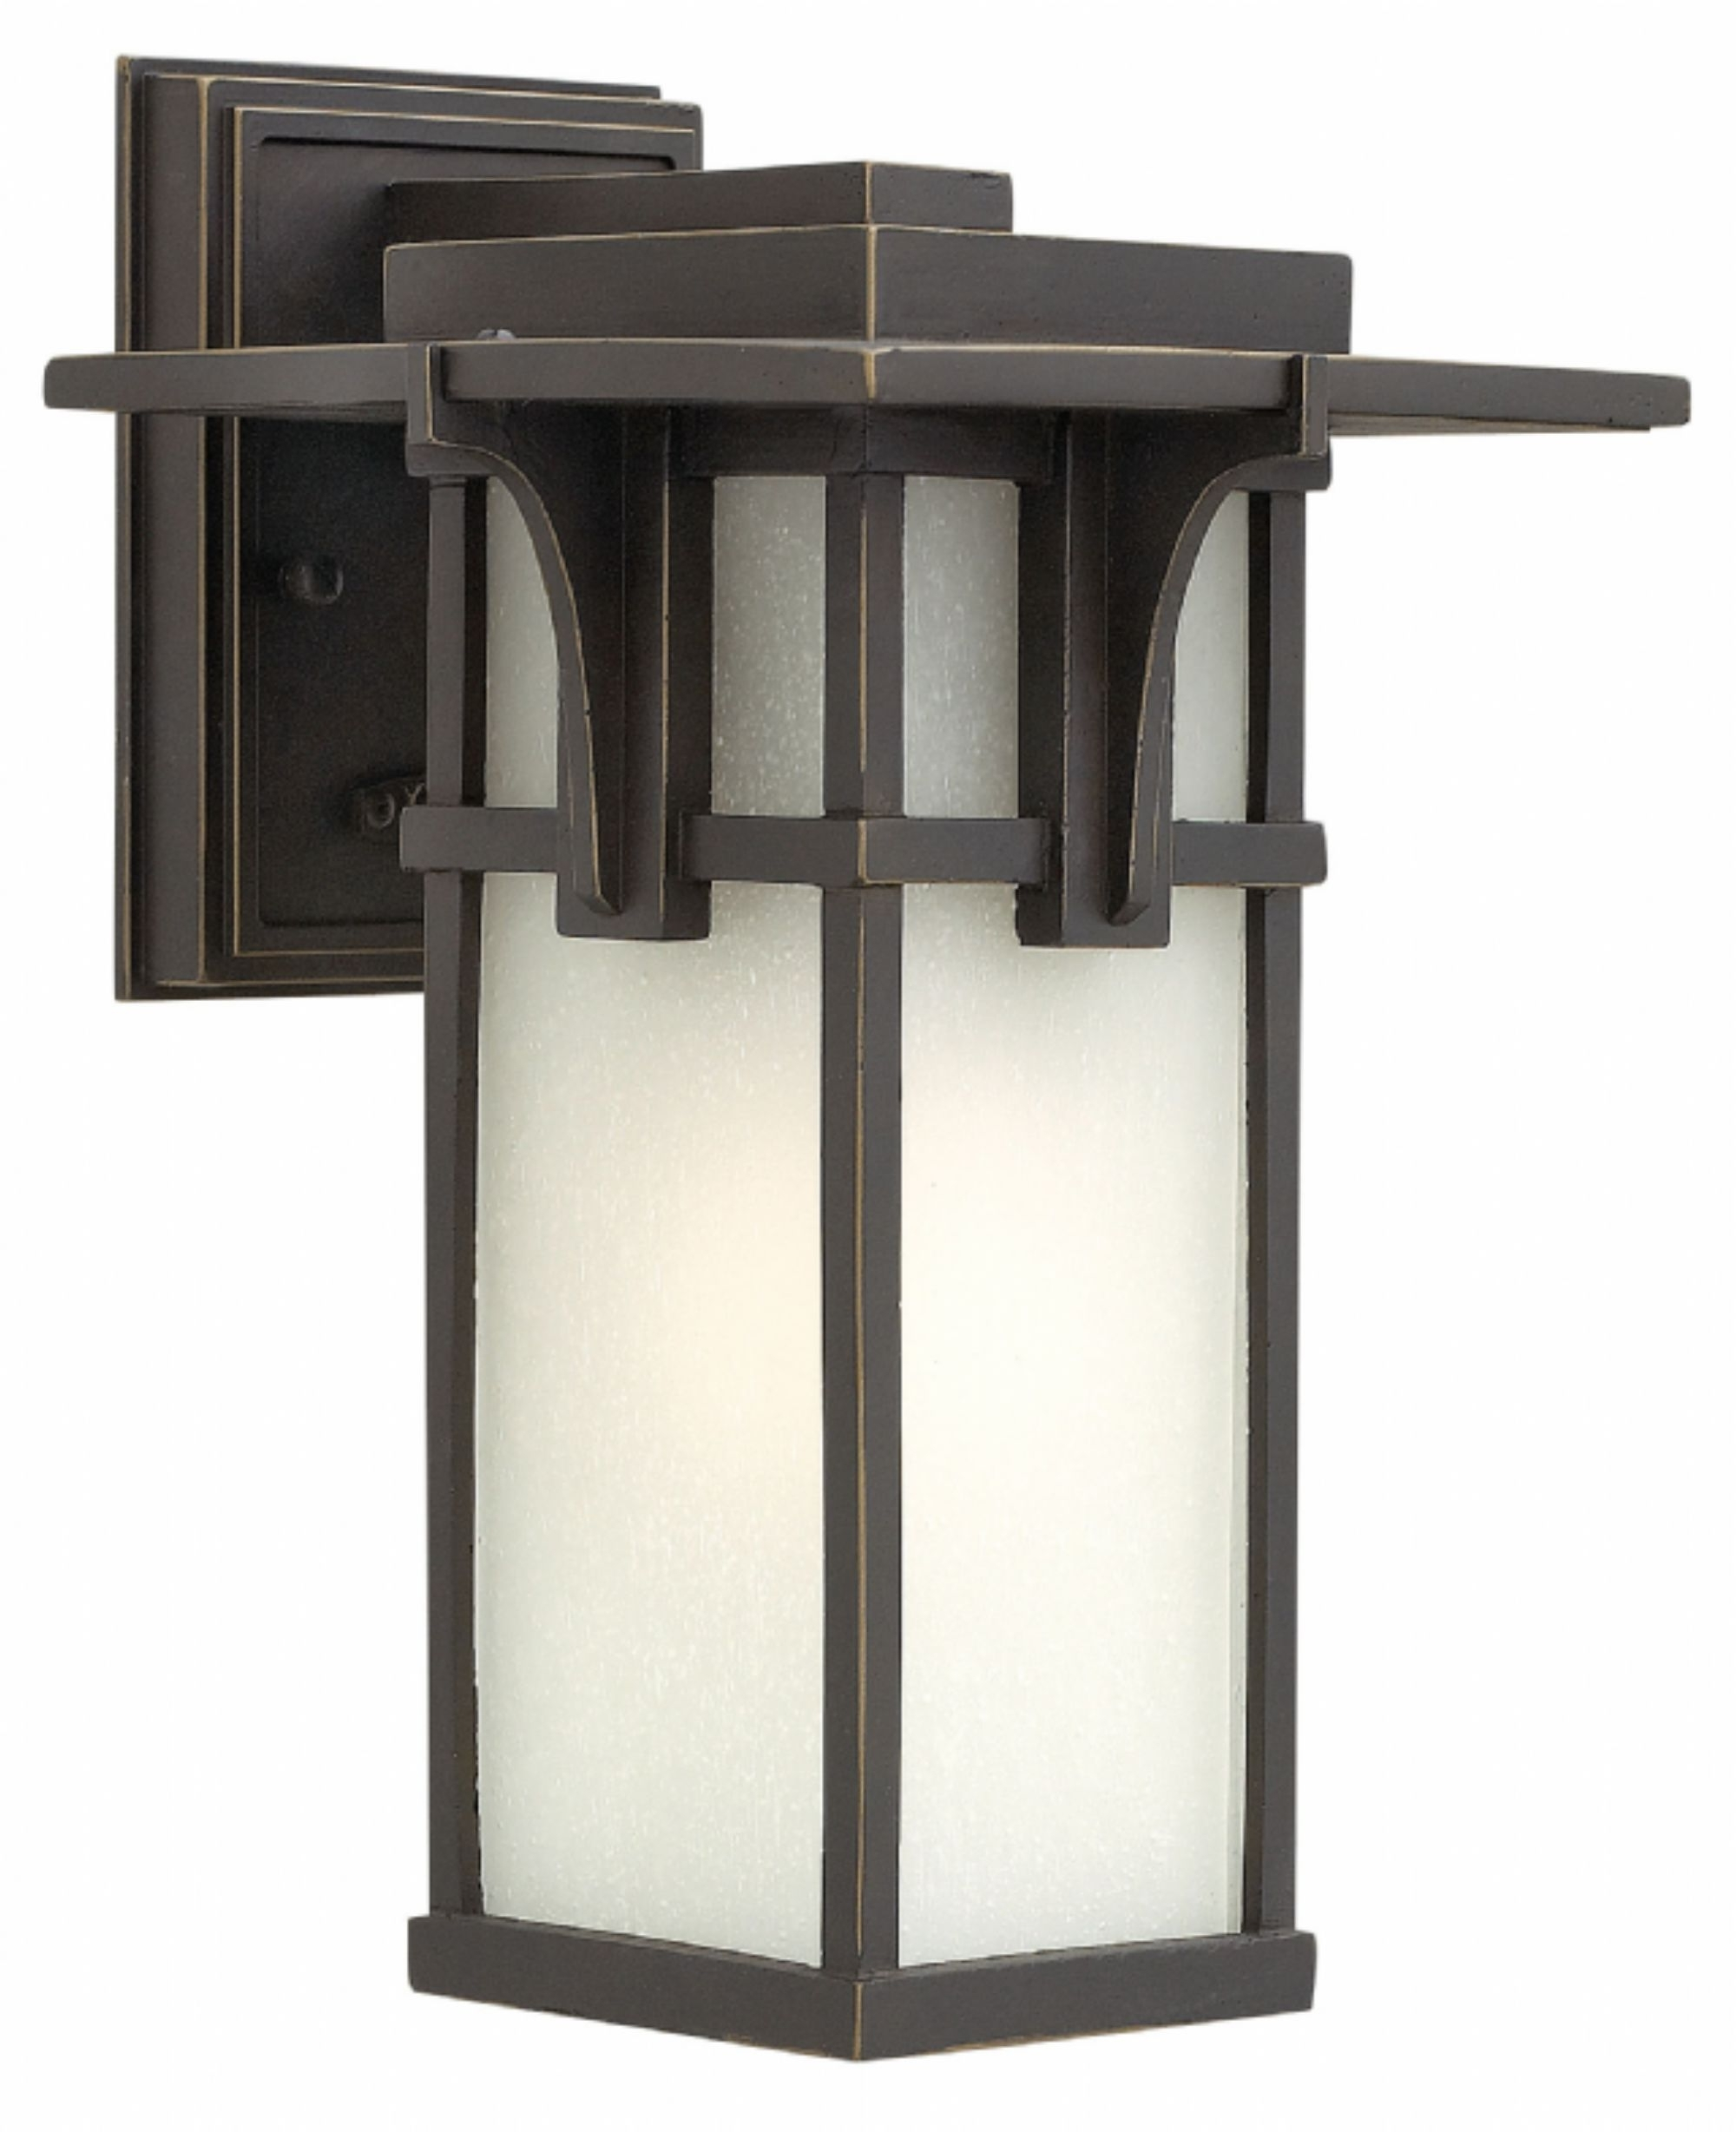 Oil Rubbed Bronze Manhattan > Exterior Wall Mount In Trendy Large Wall Mount Hinkley Lighting (View 17 of 20)